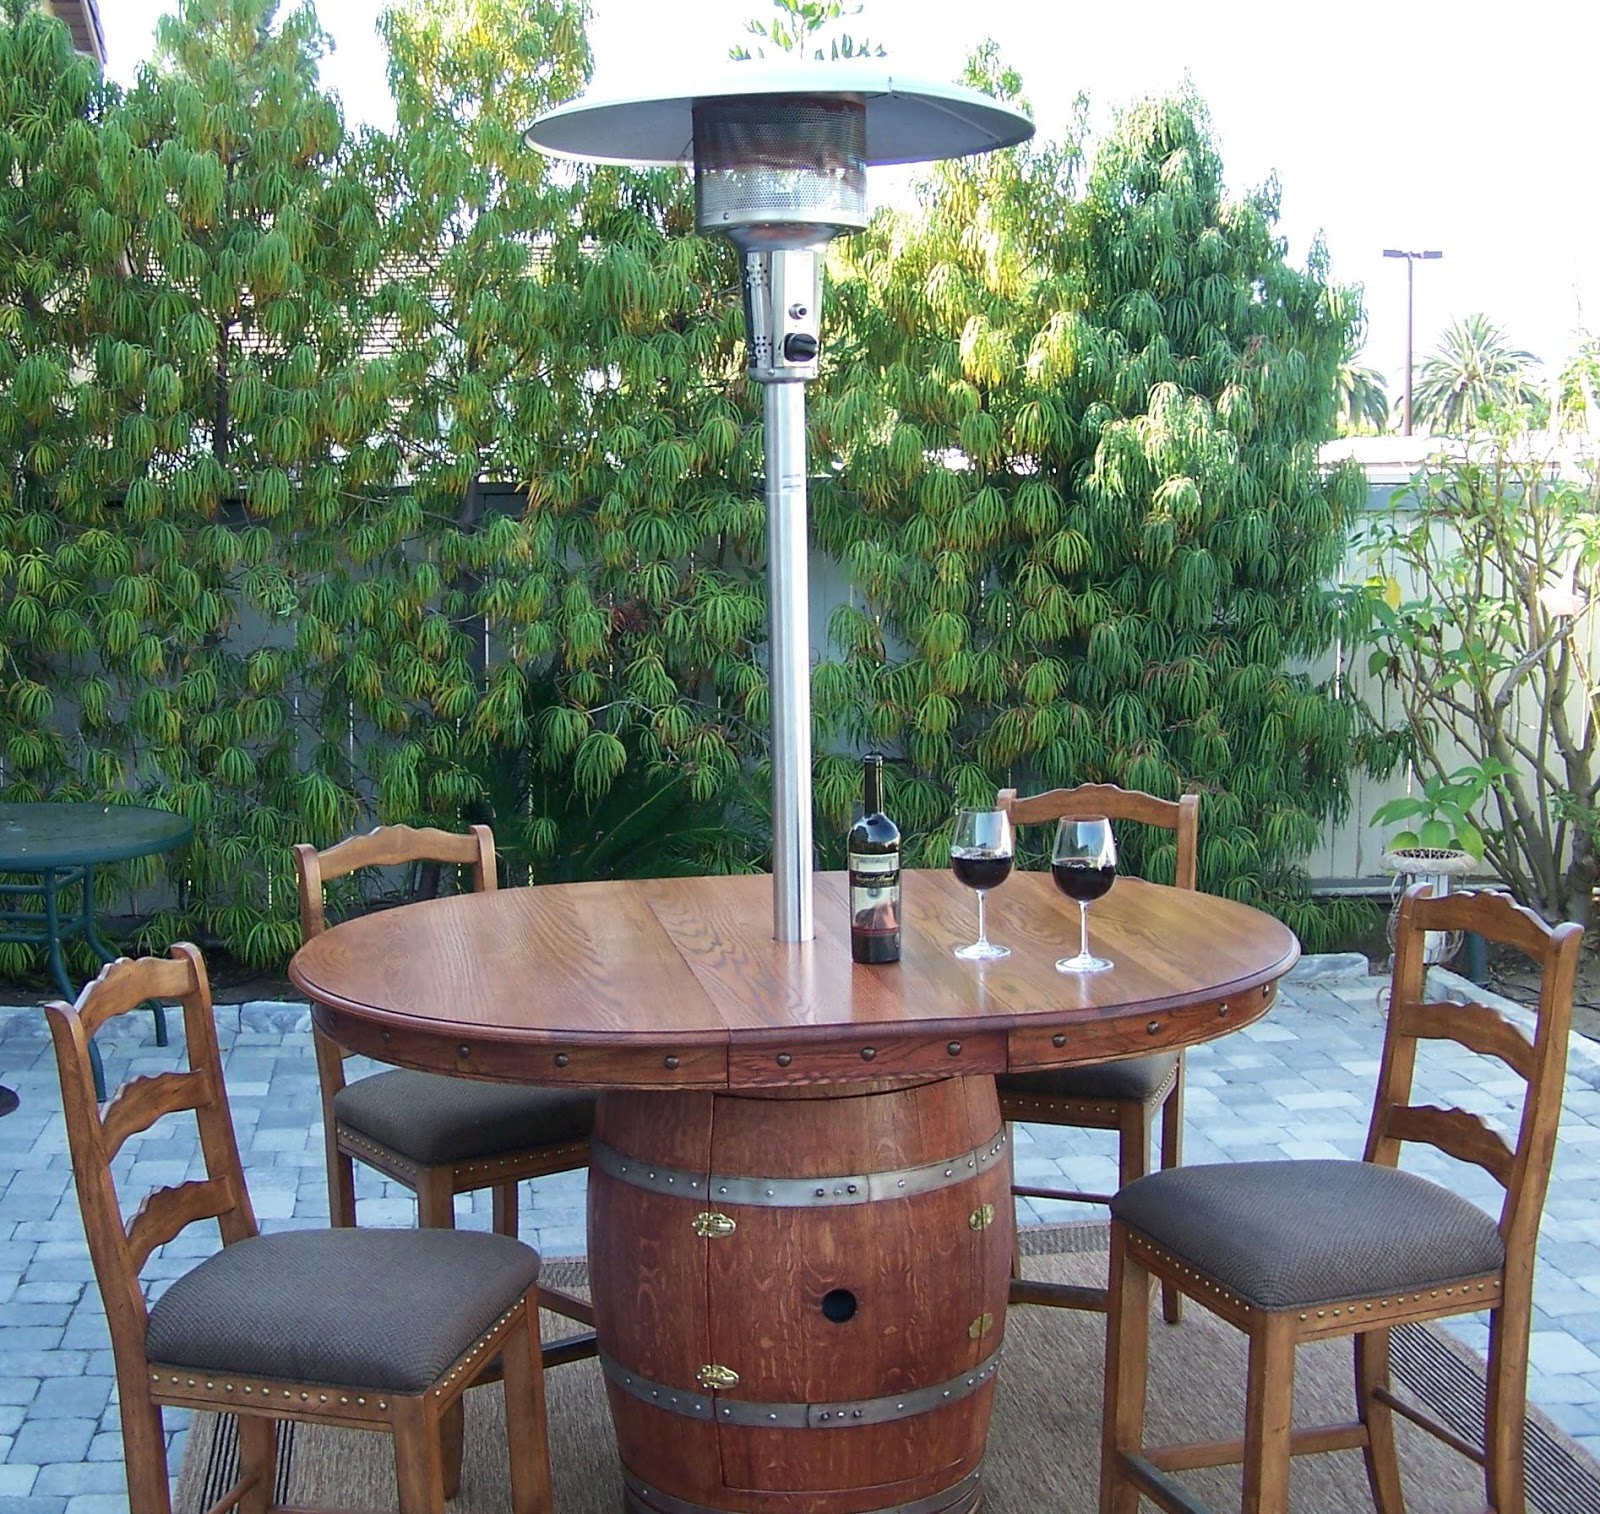 Patio Heaters Propane With Table For Garden Party